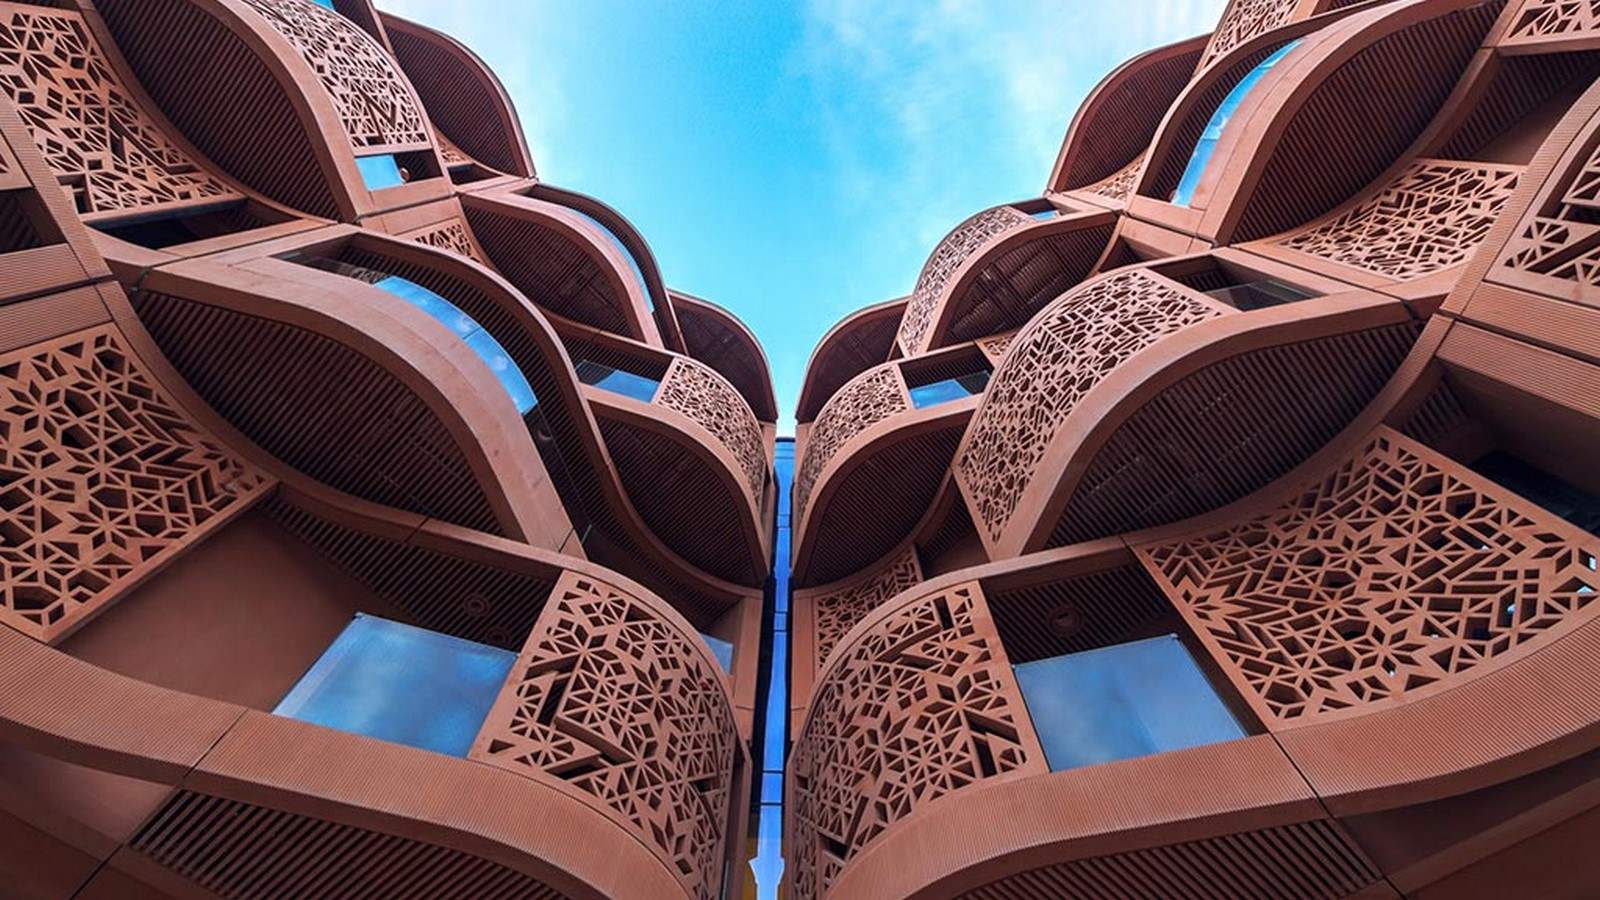 Masdar City: The first sustainable city - Sheet6